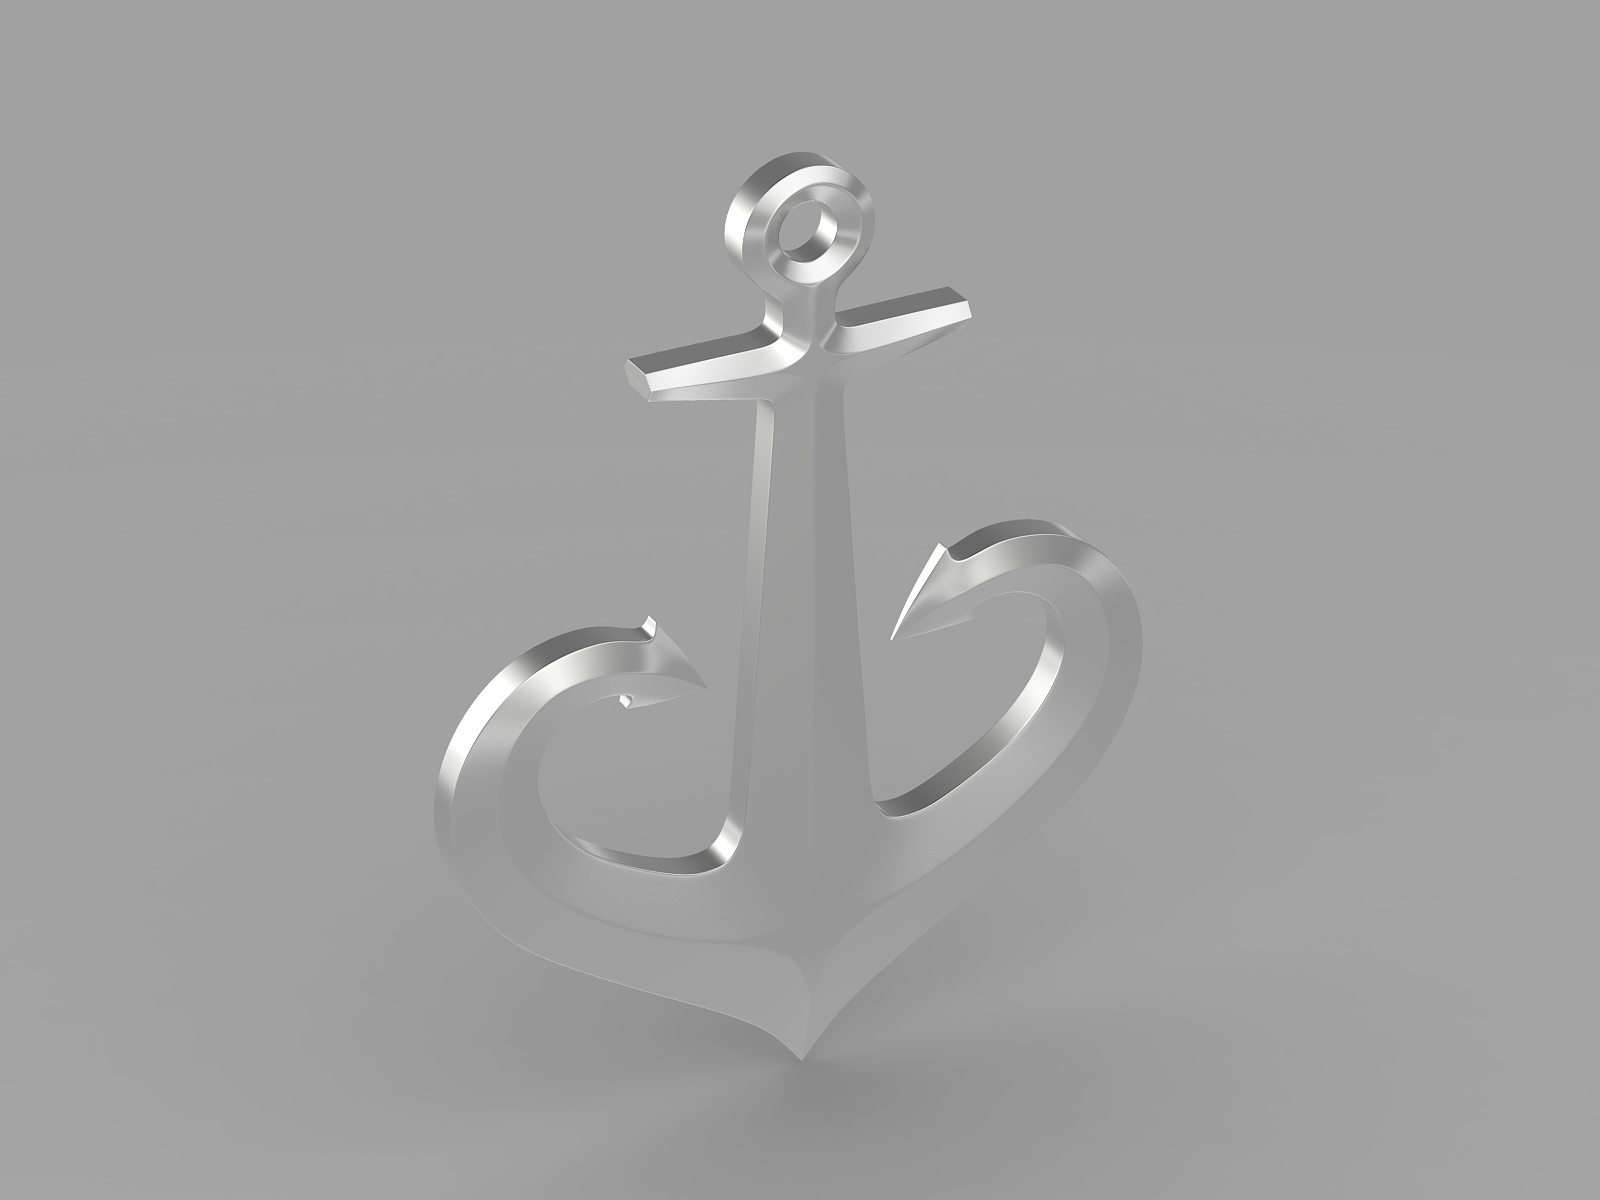 anchor 1 3d model 3ds fbx c4d lwo ma mb hrc xsi obj 223617